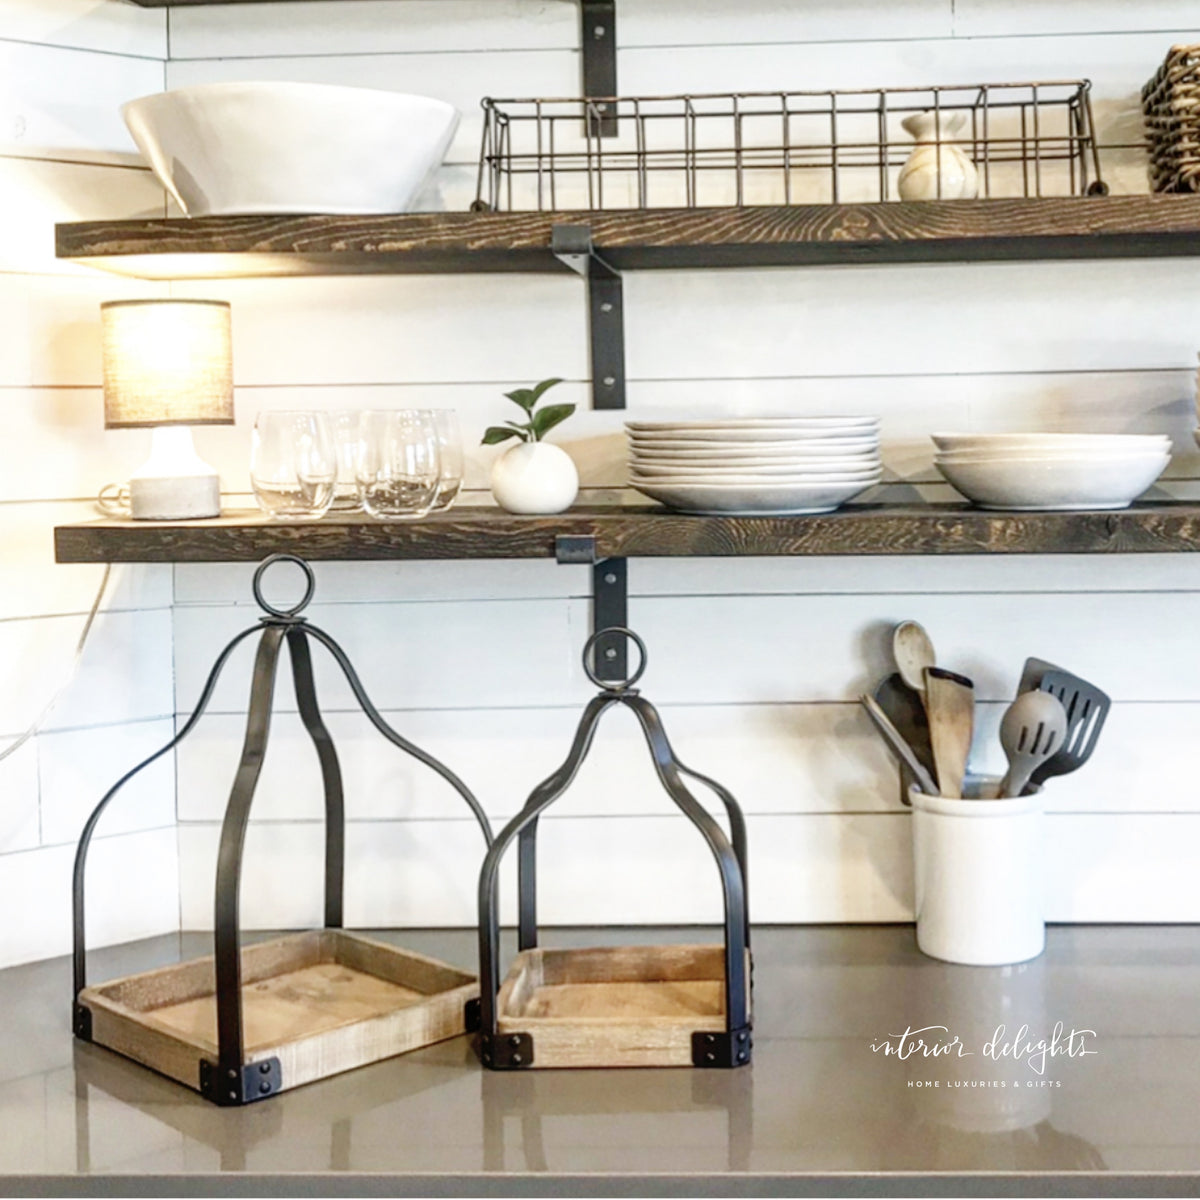 Pair of Metal and Wood Lanterns - Interior Delights Parker